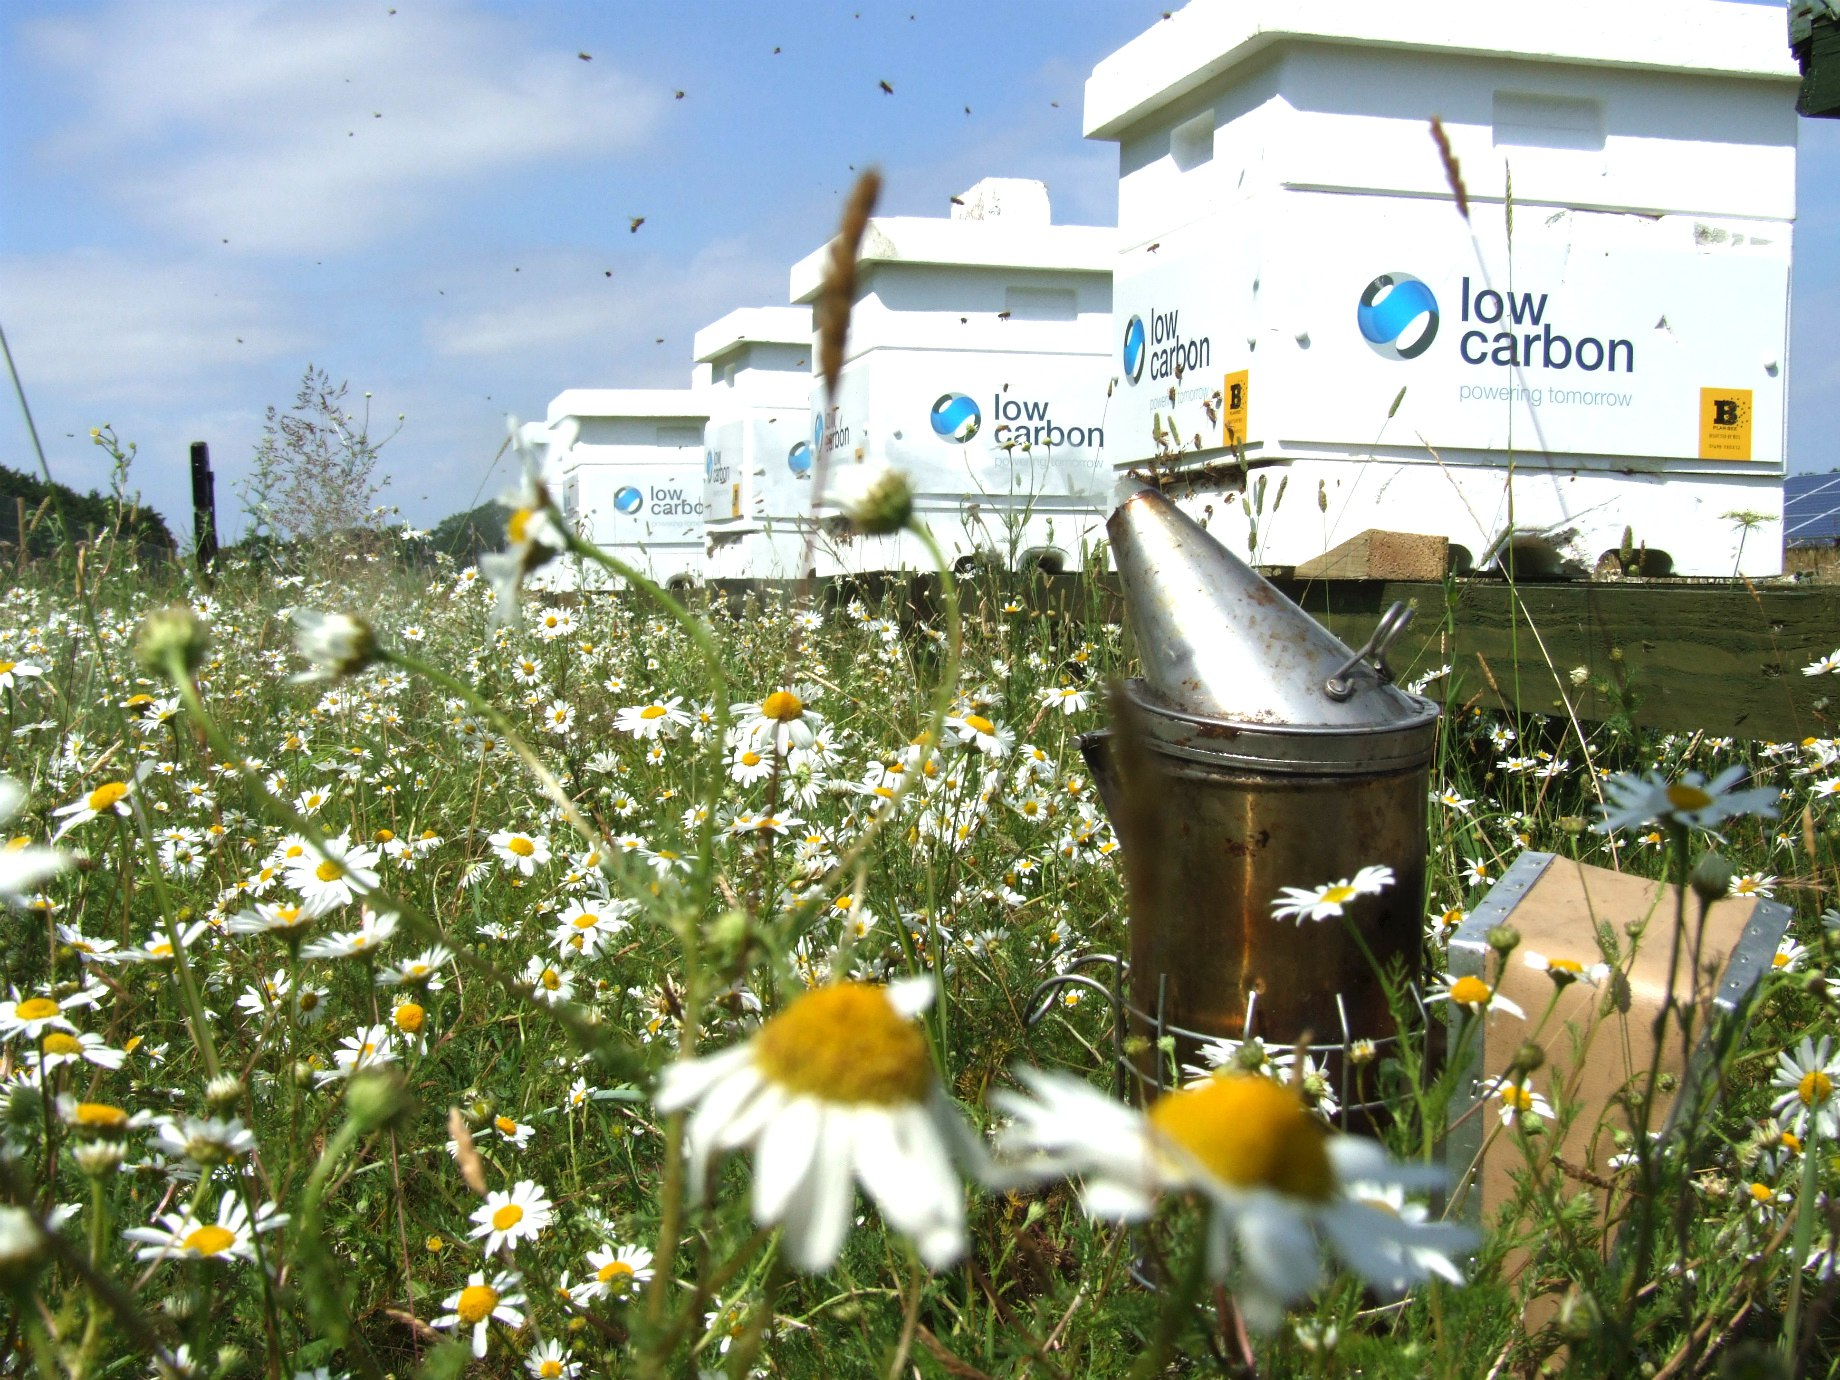 Low Carbon beekeeping